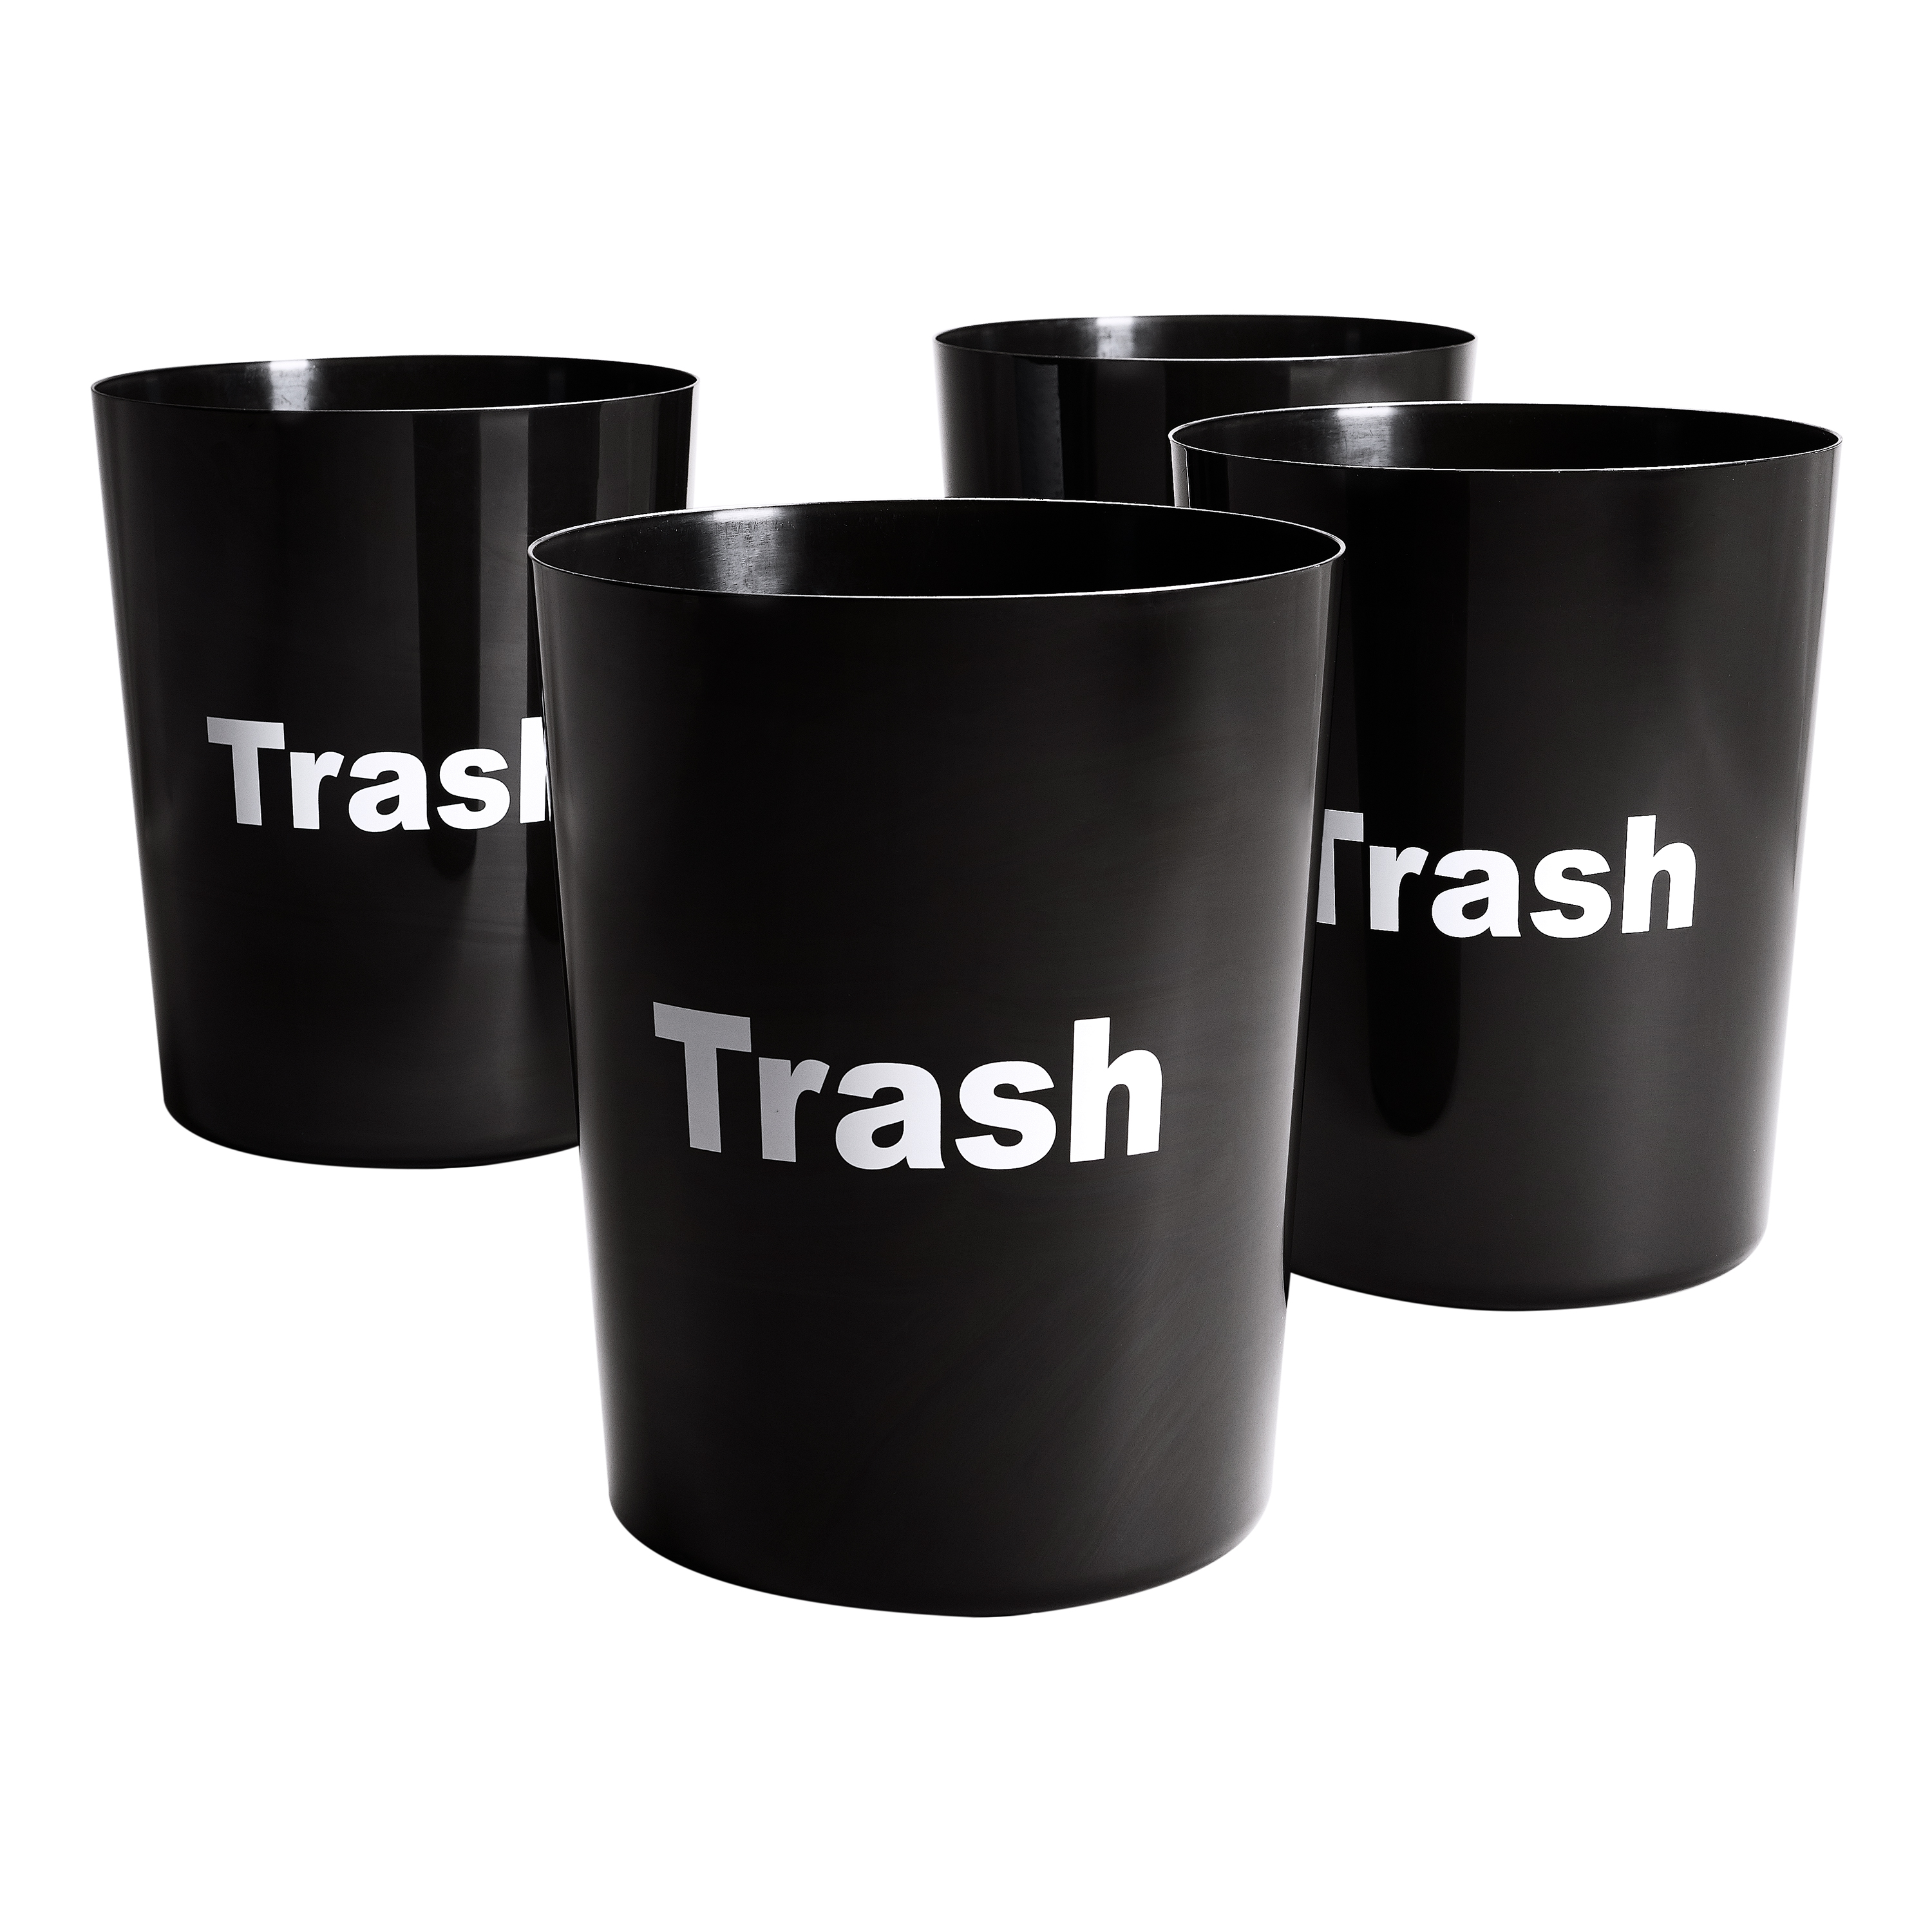 Mainstays Sentiment Waste Trash Can, 5 Gallon, 4 pack